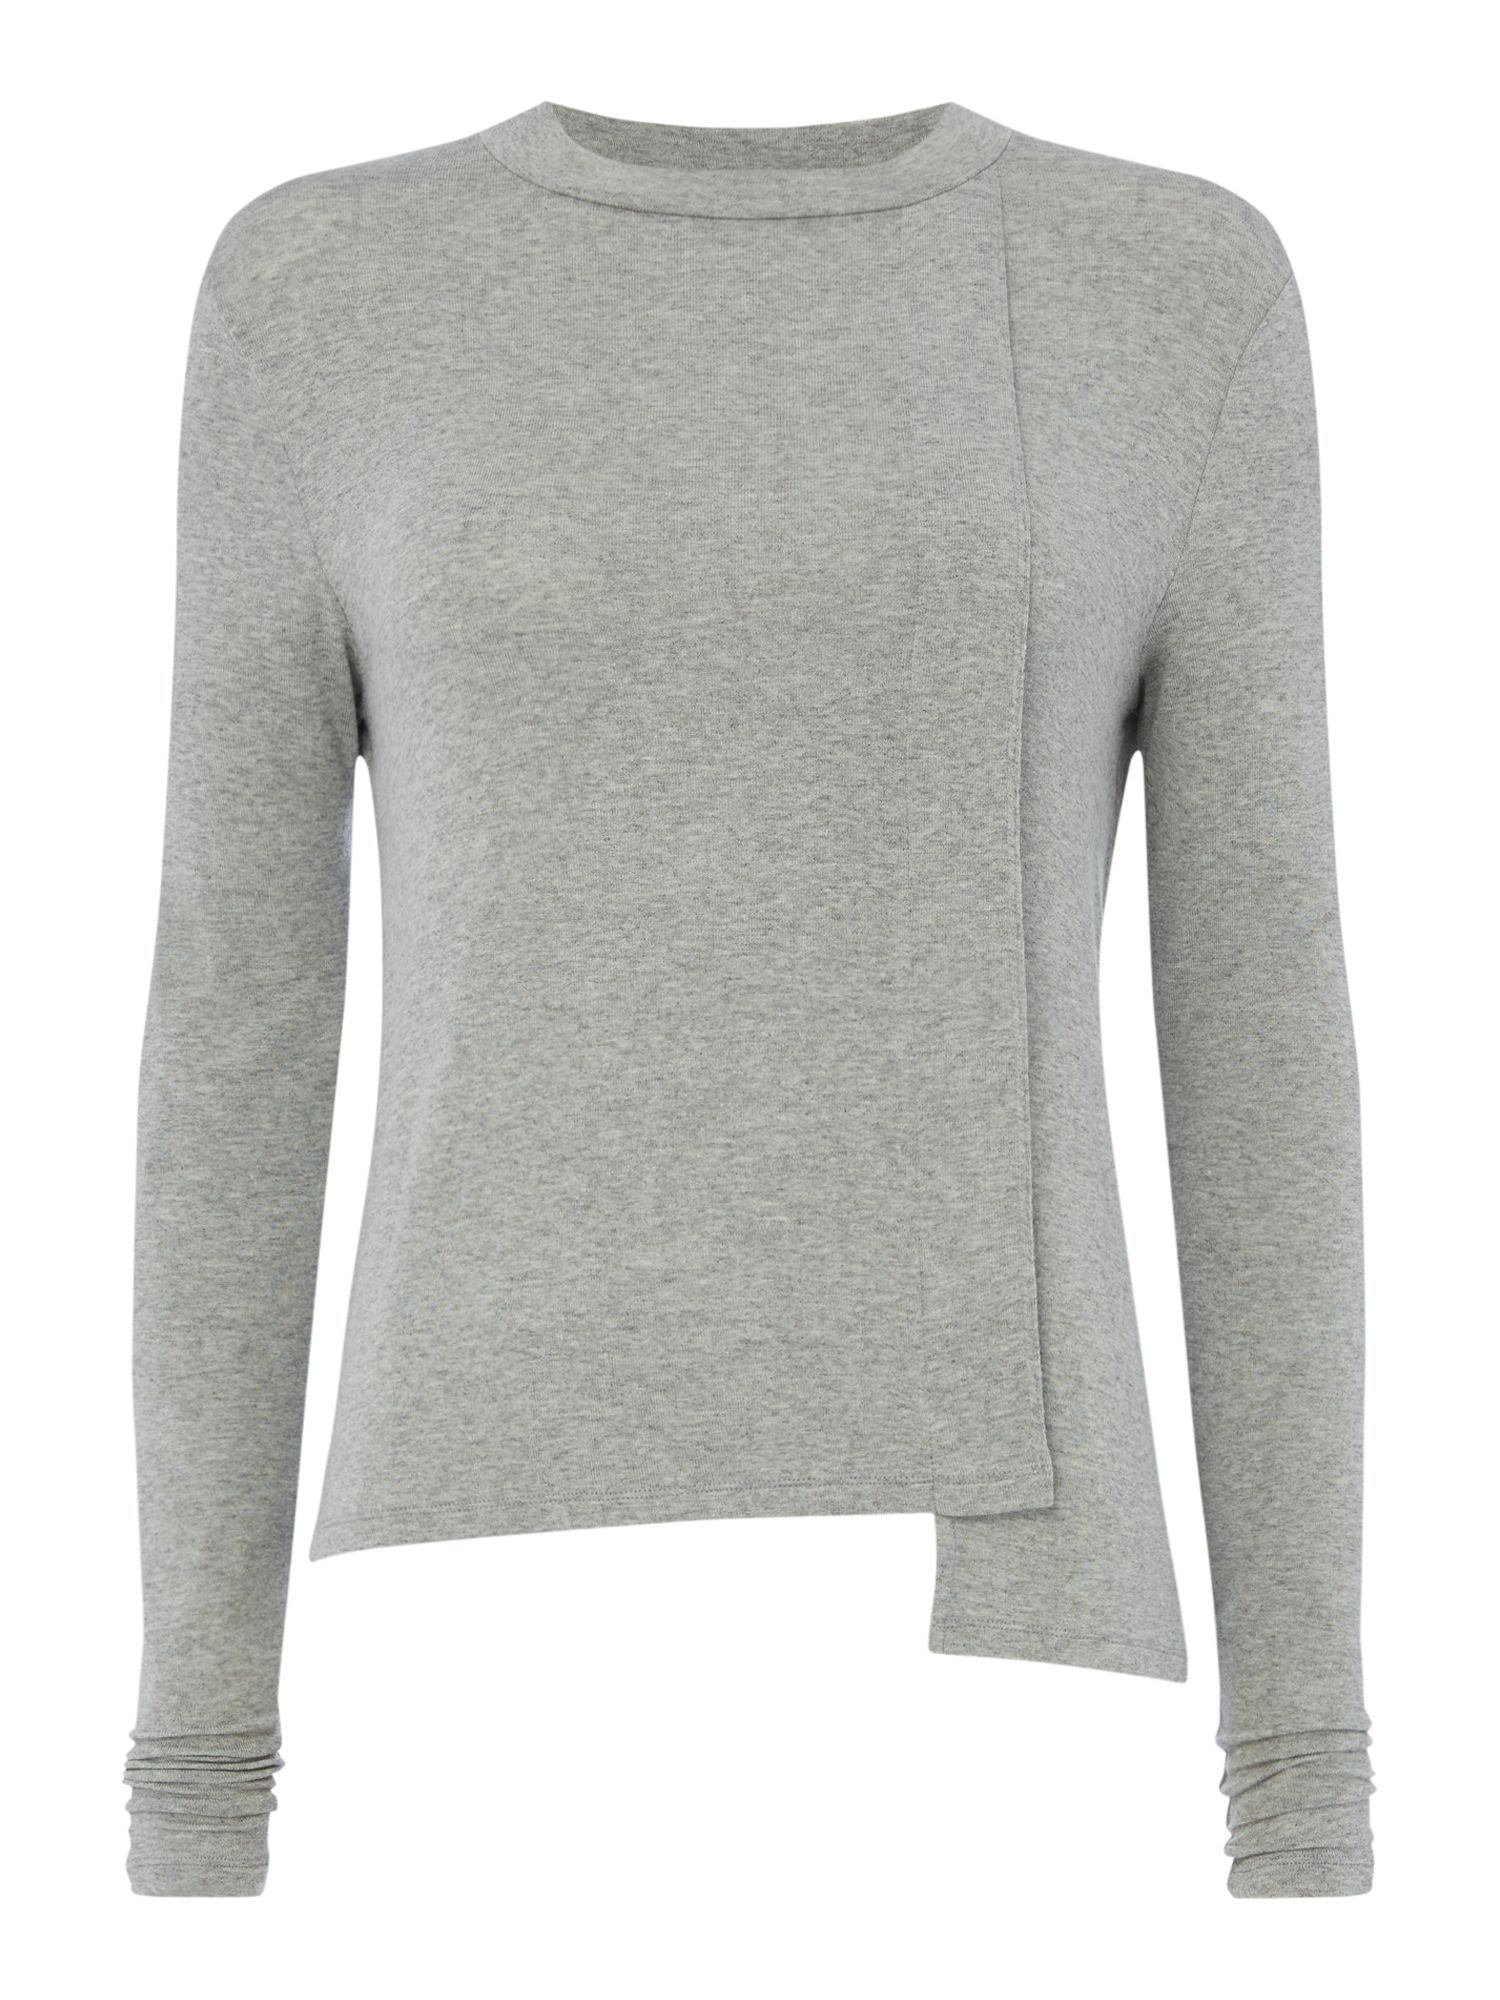 Maison De Nimes Cut and sew stepped hem long sleeve top, Grey Marl